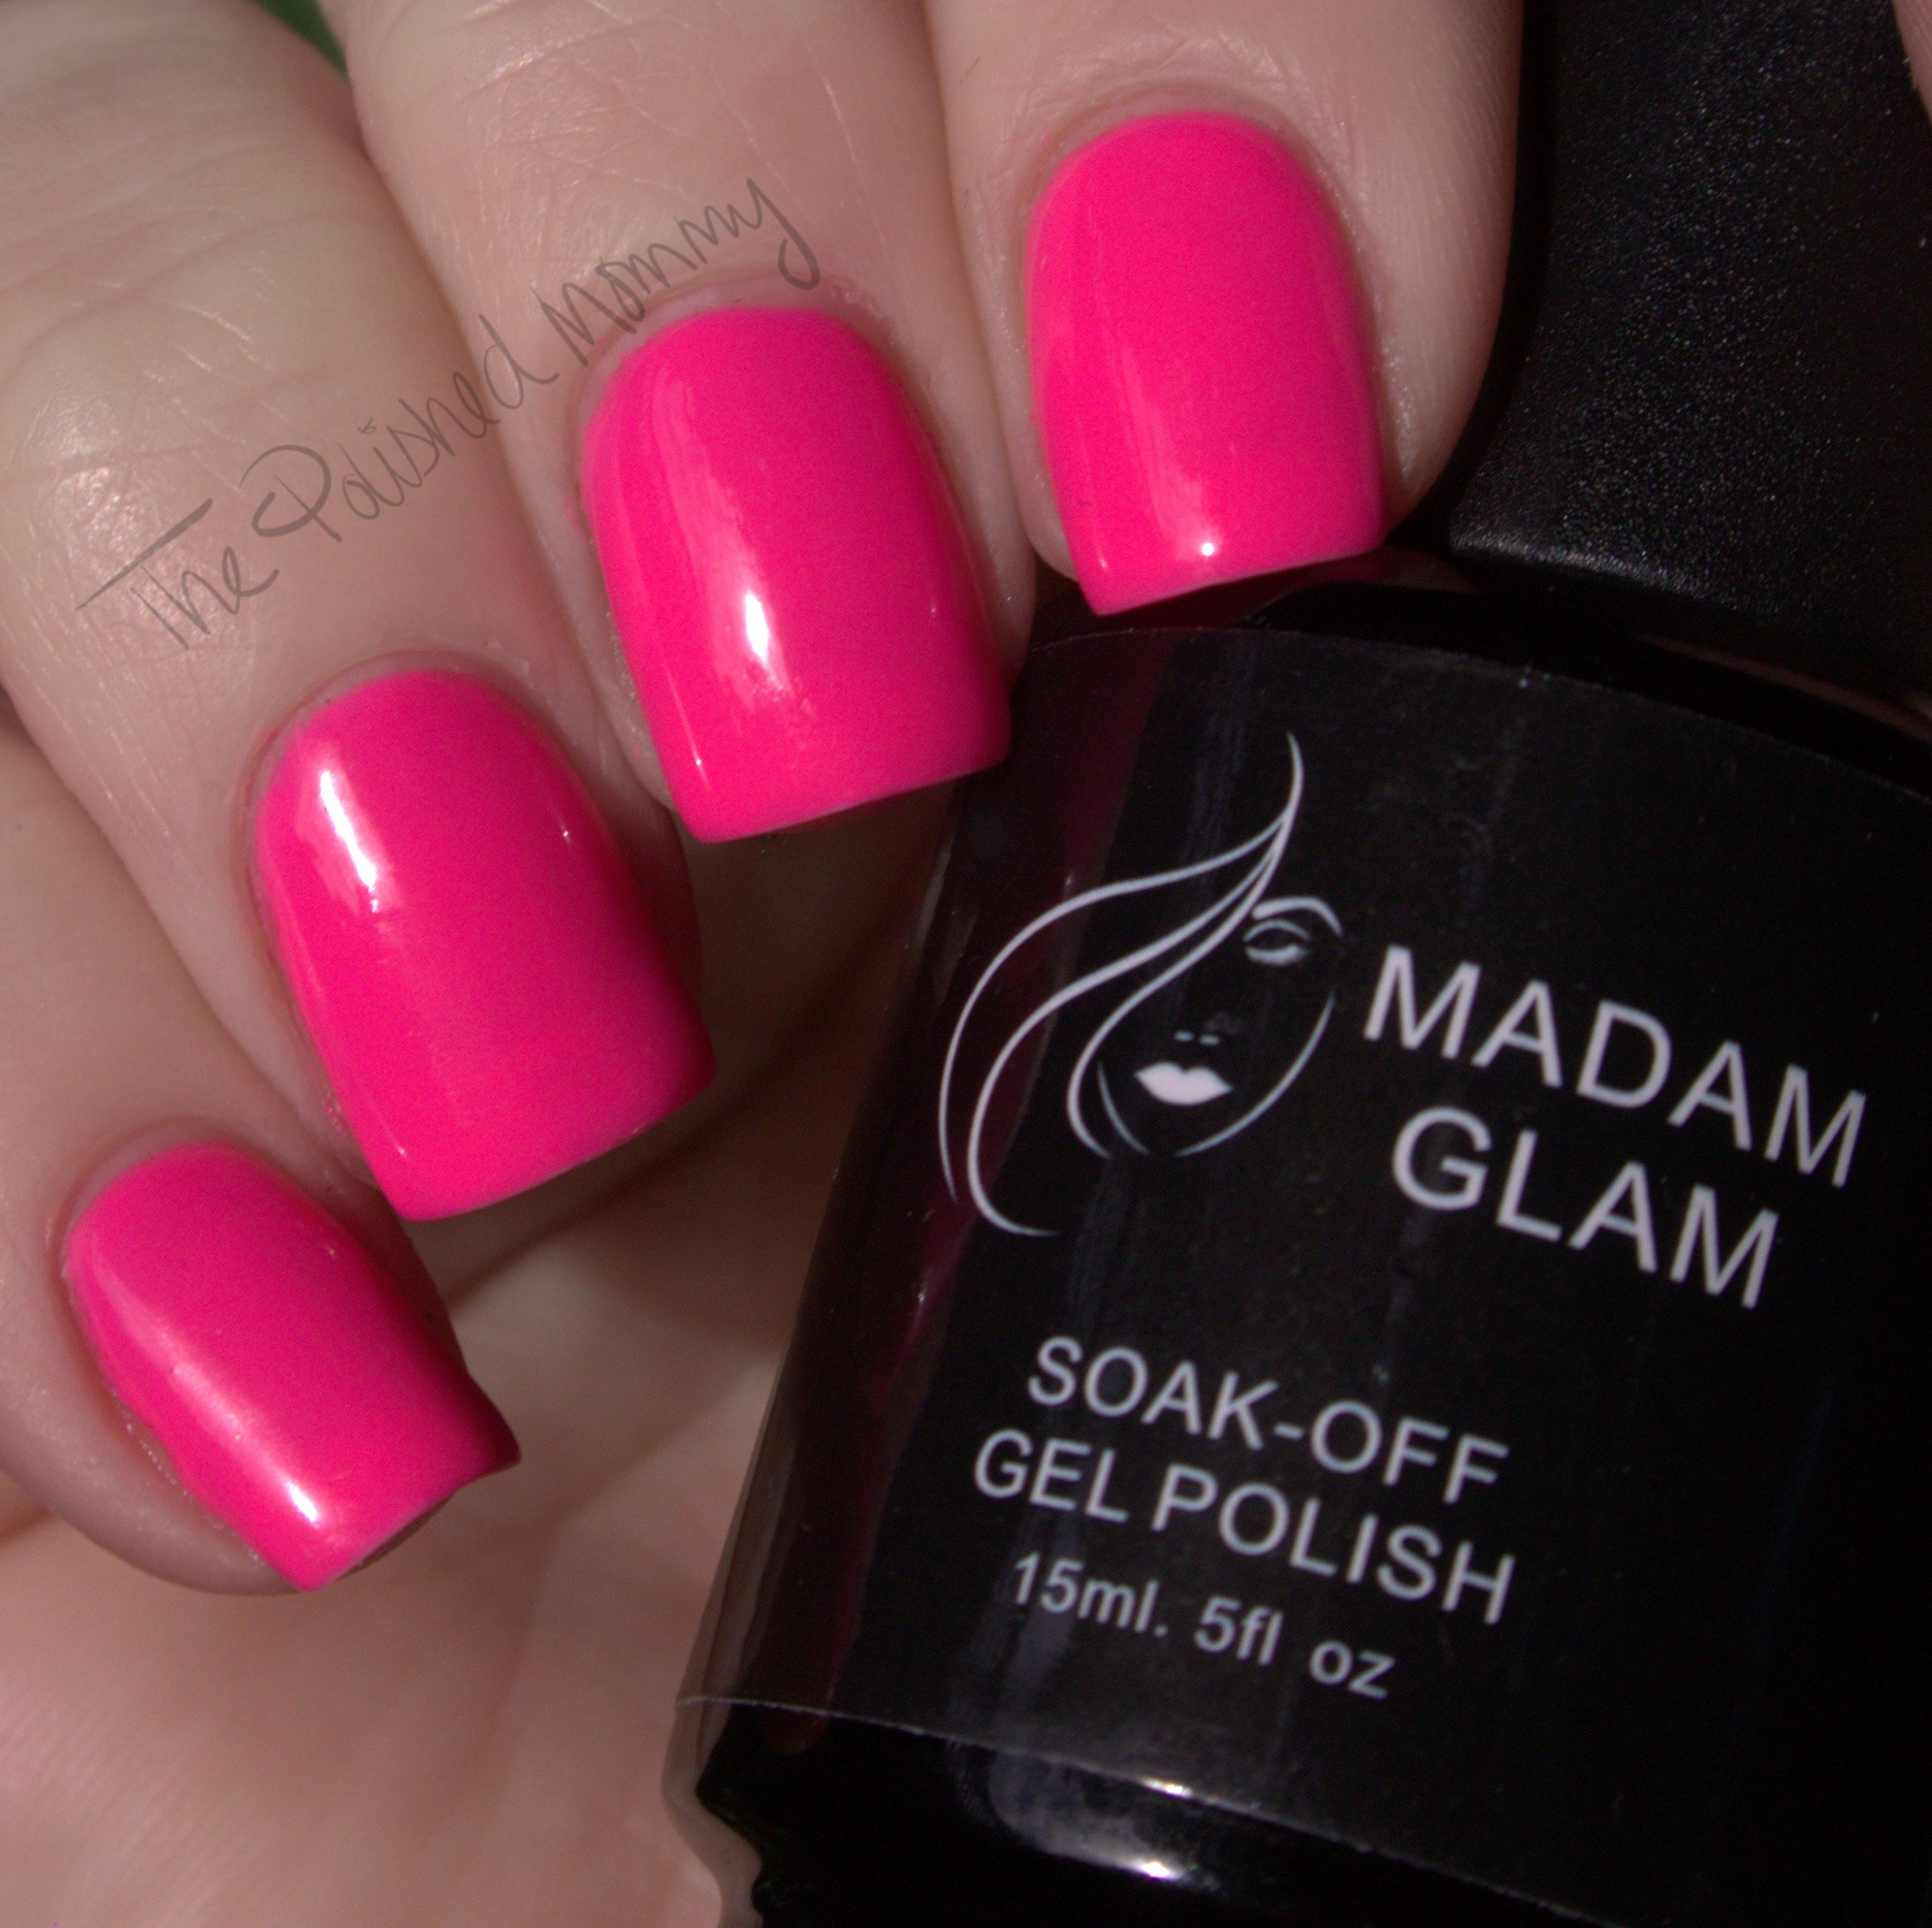 Madam Glam Soak Off Gel Review - The Polished Mommy